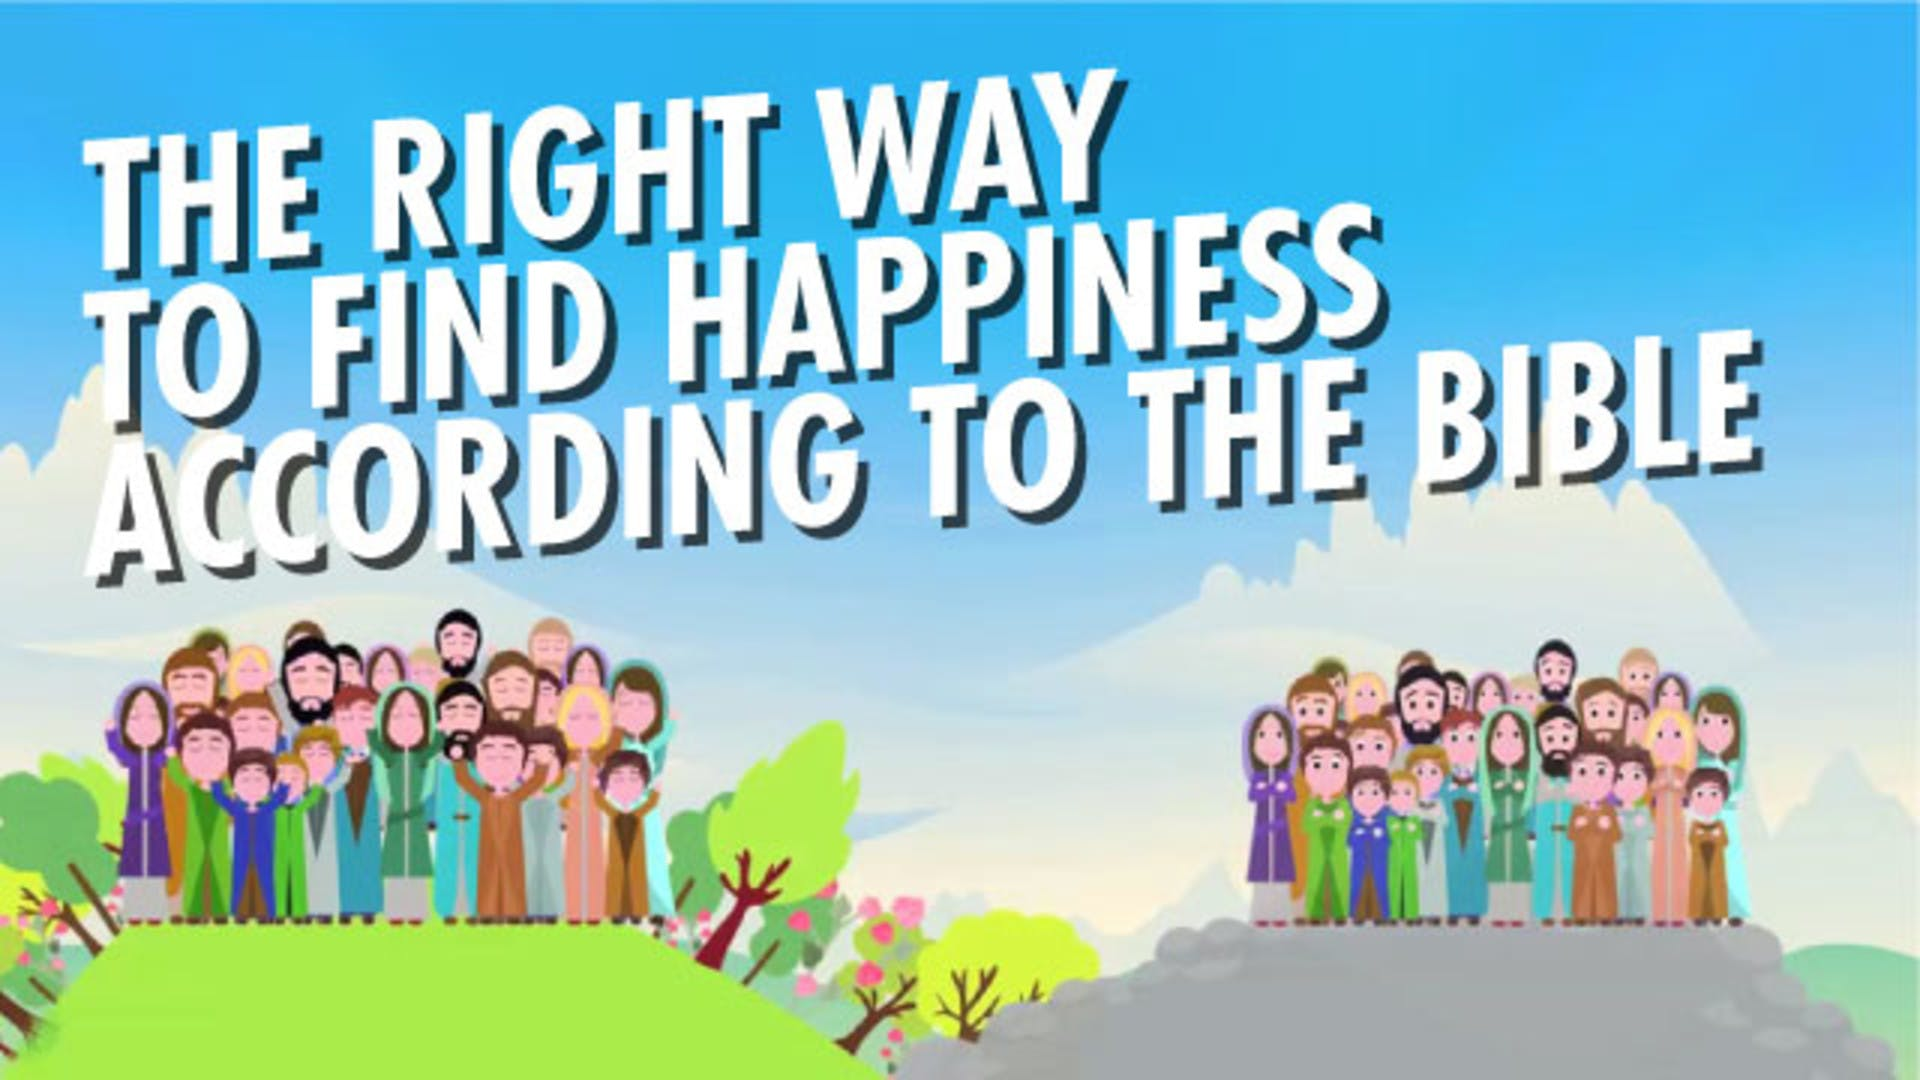 Where joy and happiness come from in the Bible